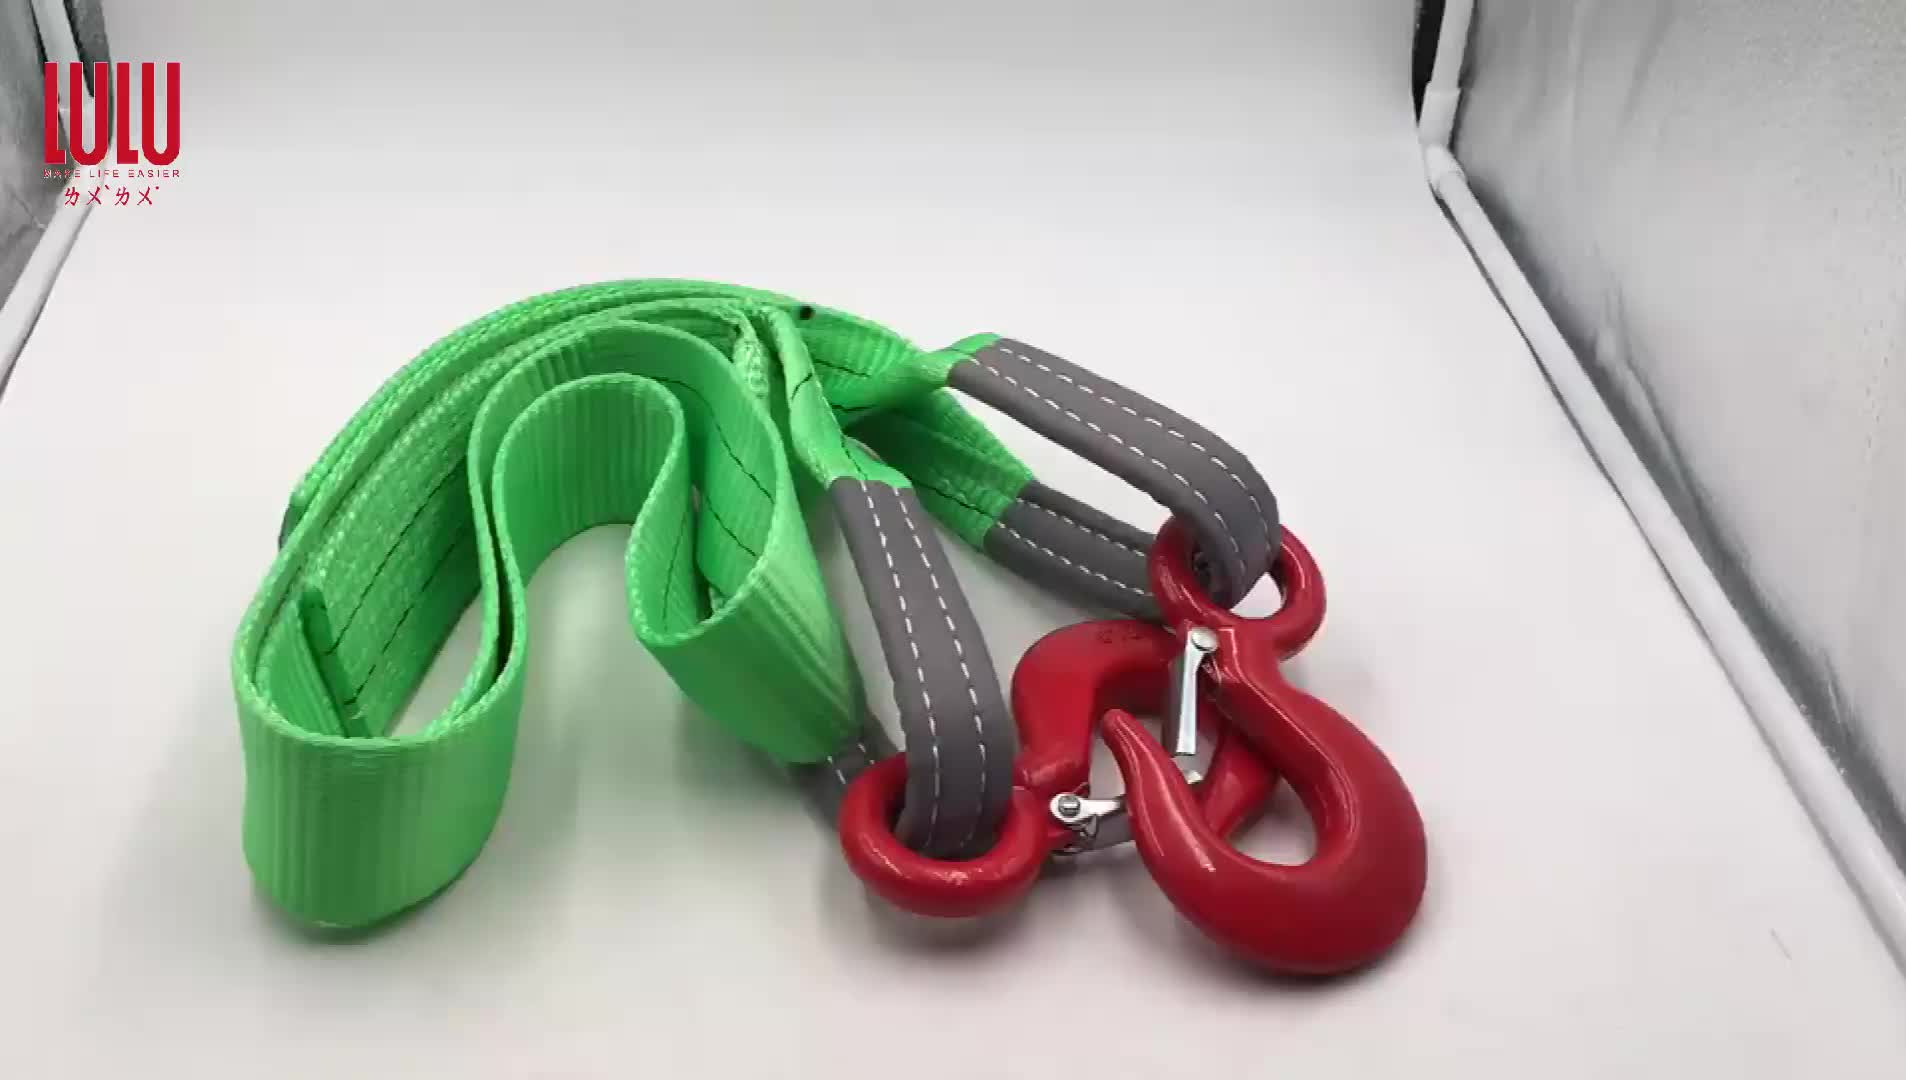 LULU Car Tow Cable Towing Strap with 2 Hooks Heavy Duty